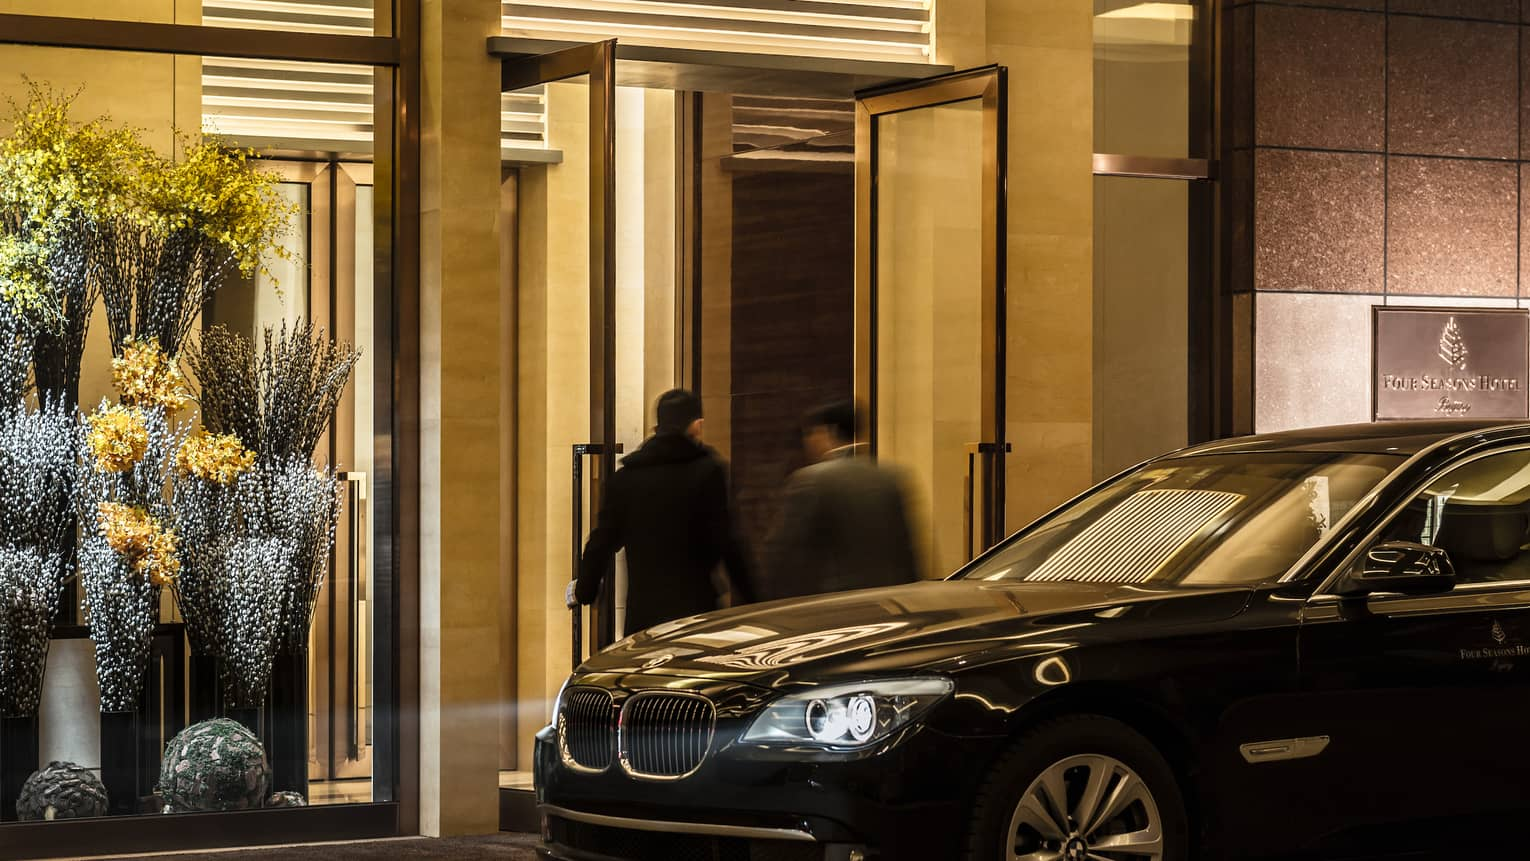 Two men walk into Four Seasons Hotel front entrance by luxury black car